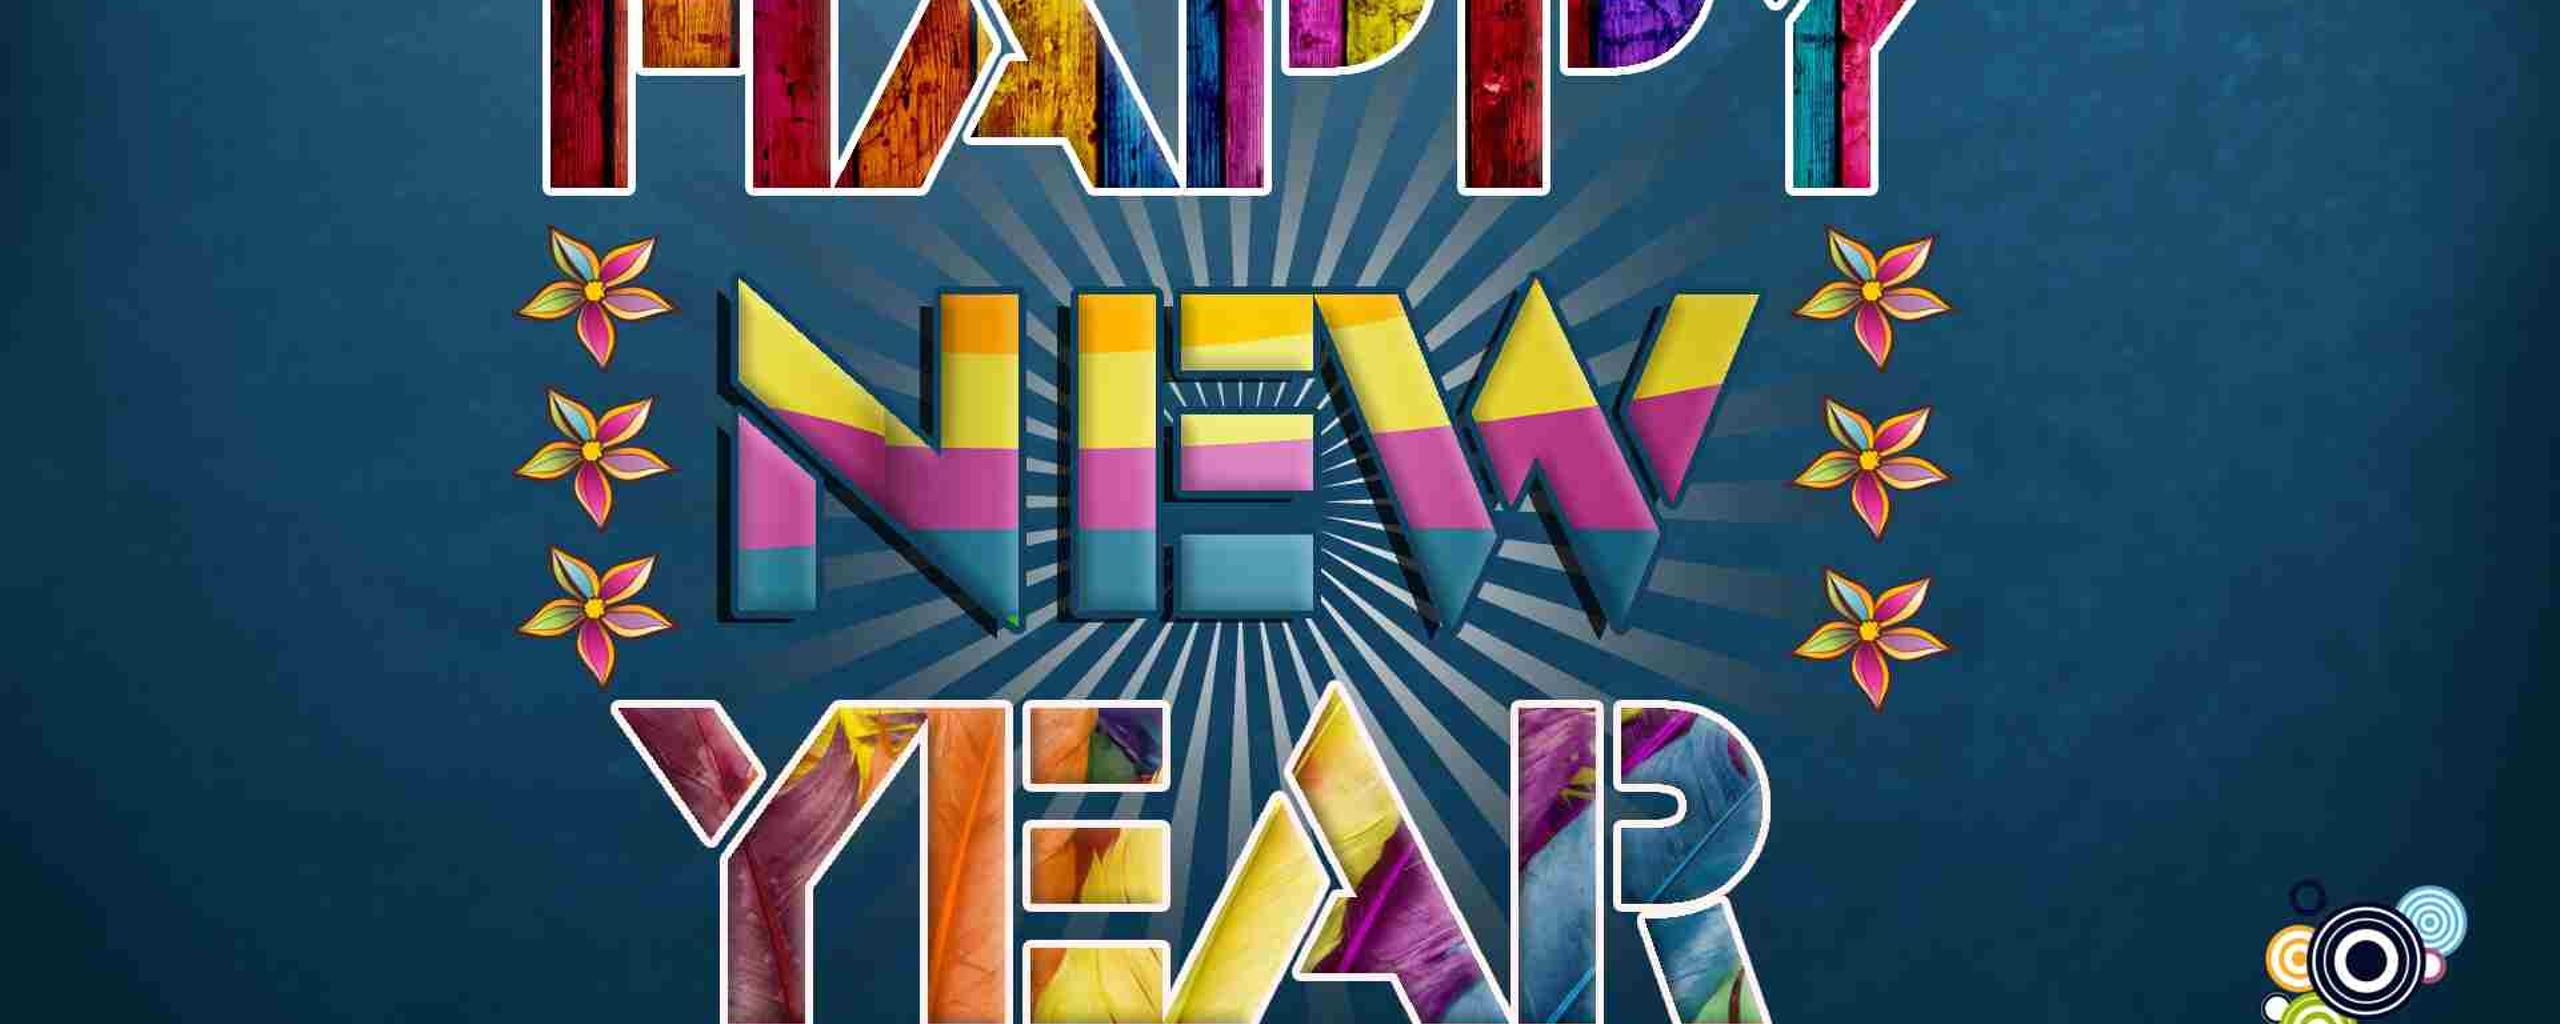 download wallpaper 2560x1024 digital art colorgul message happy new year 2018